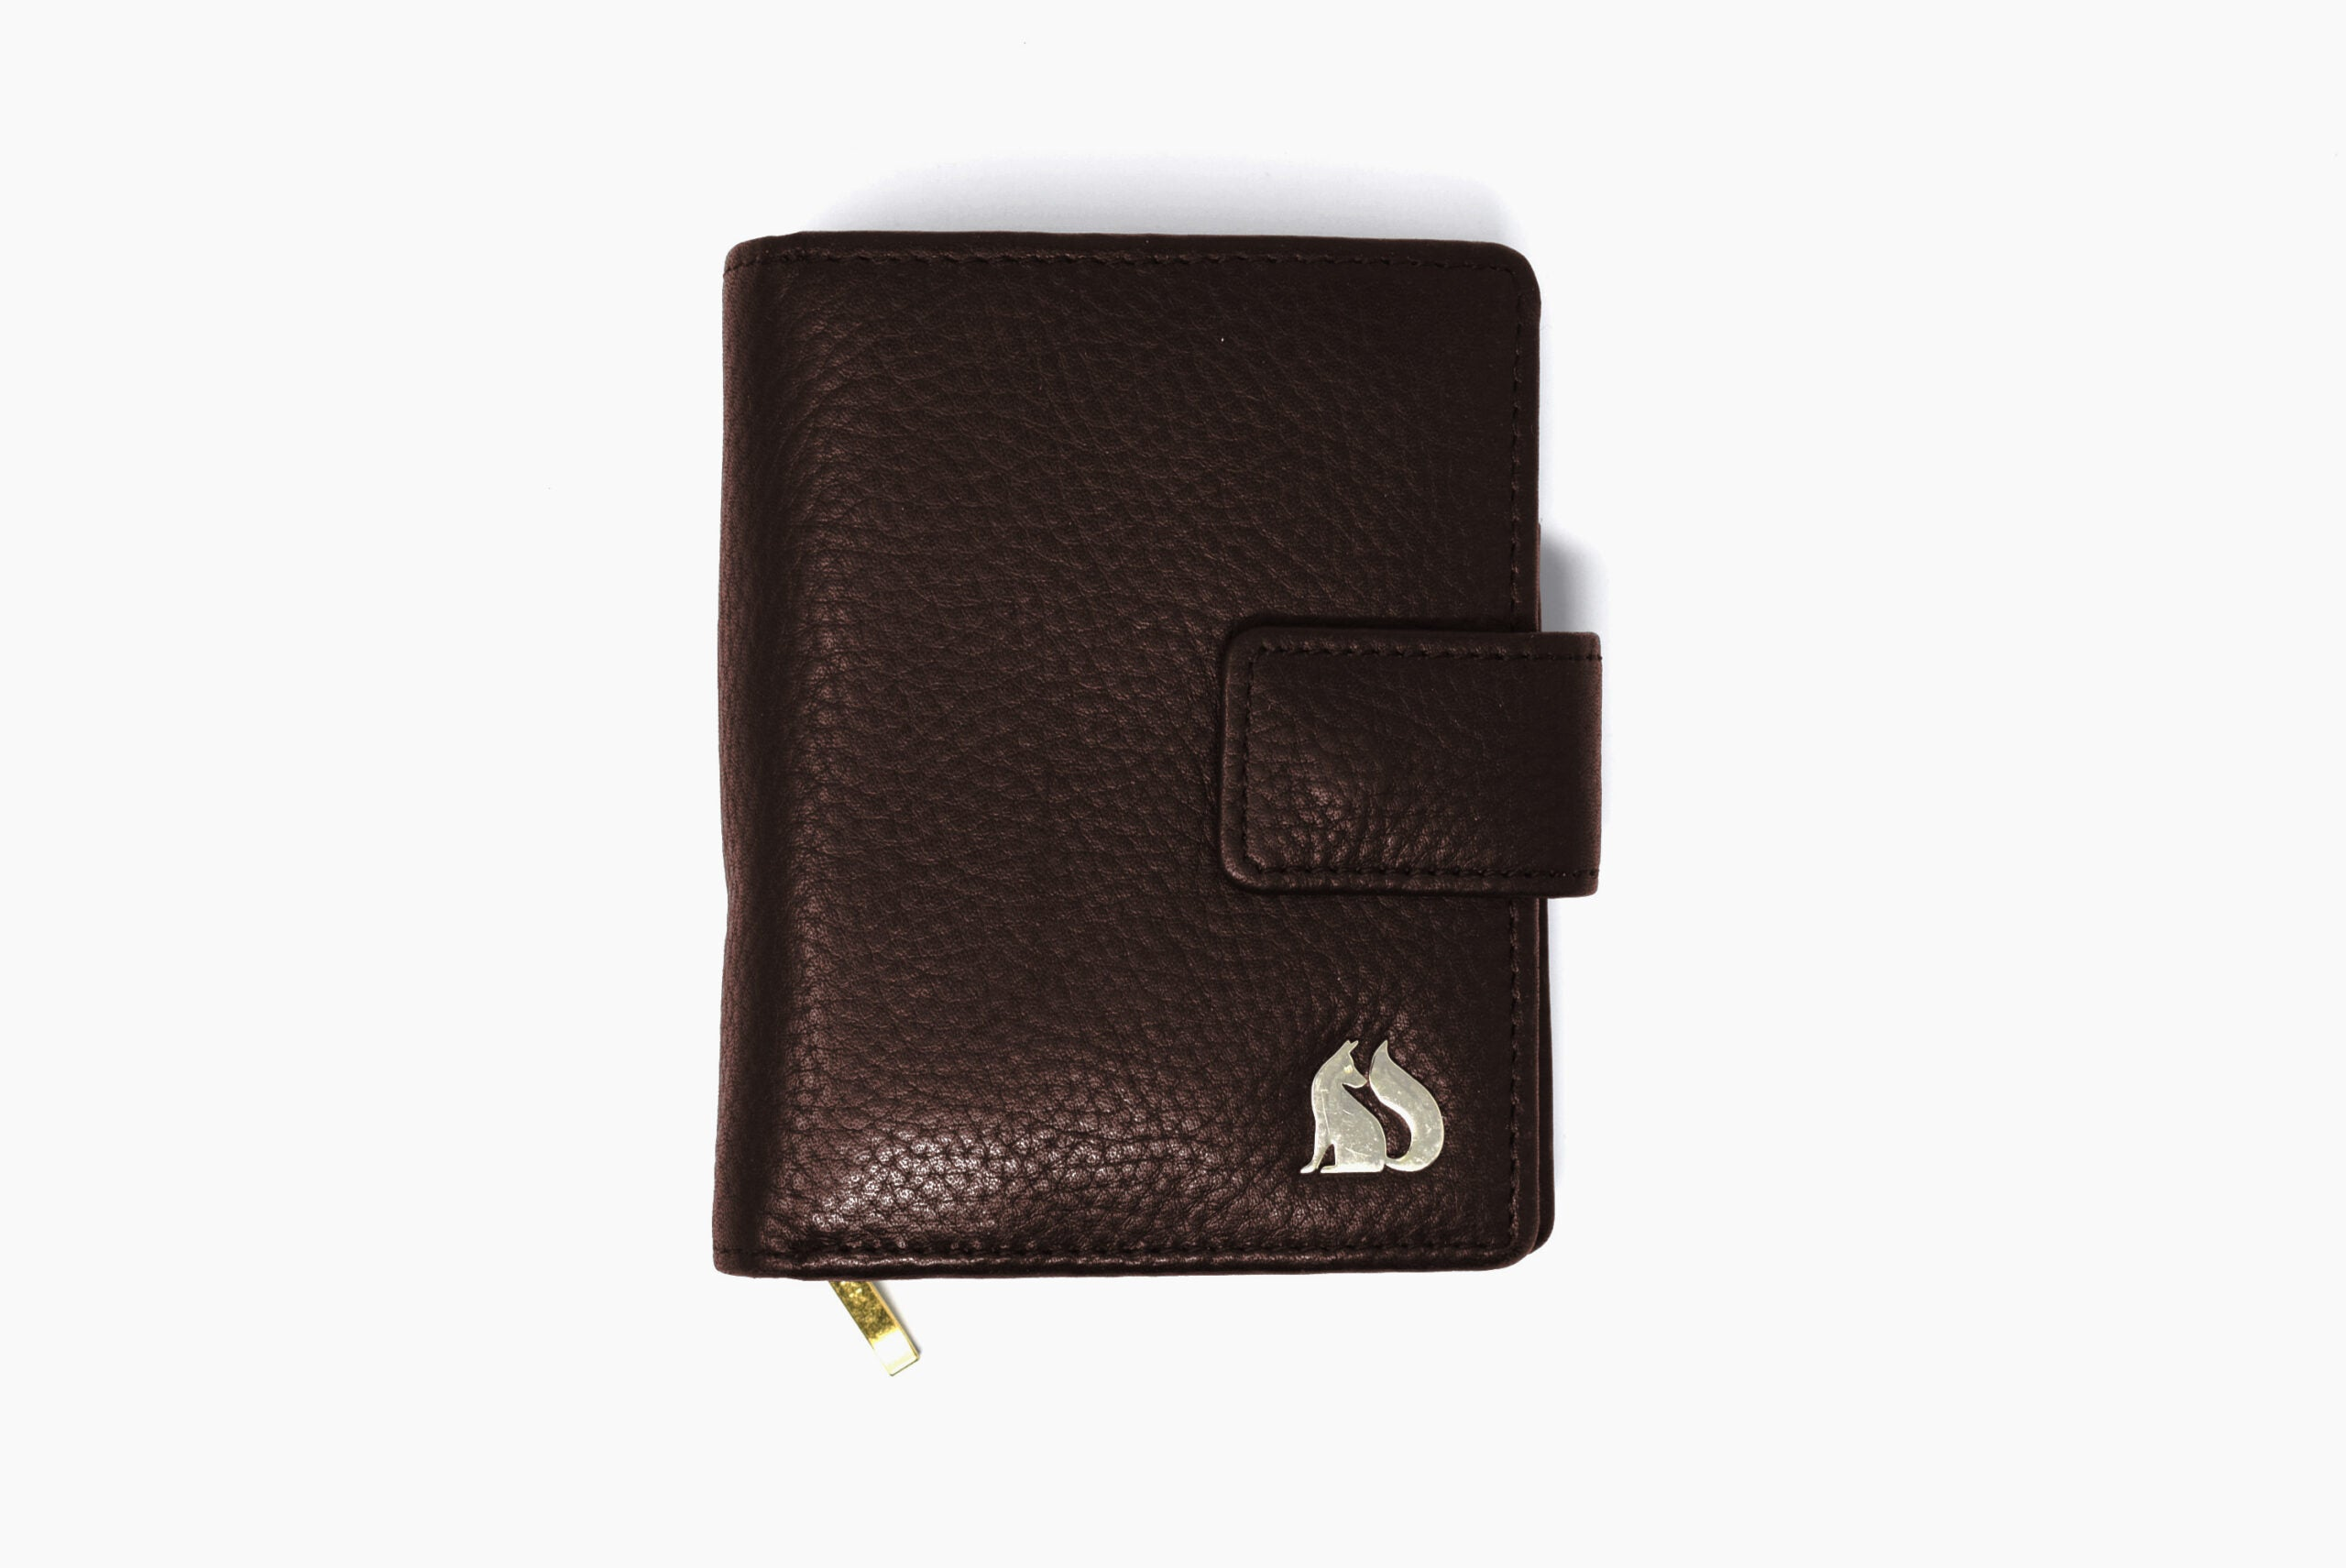 Foxfield - Holker Leather Purse